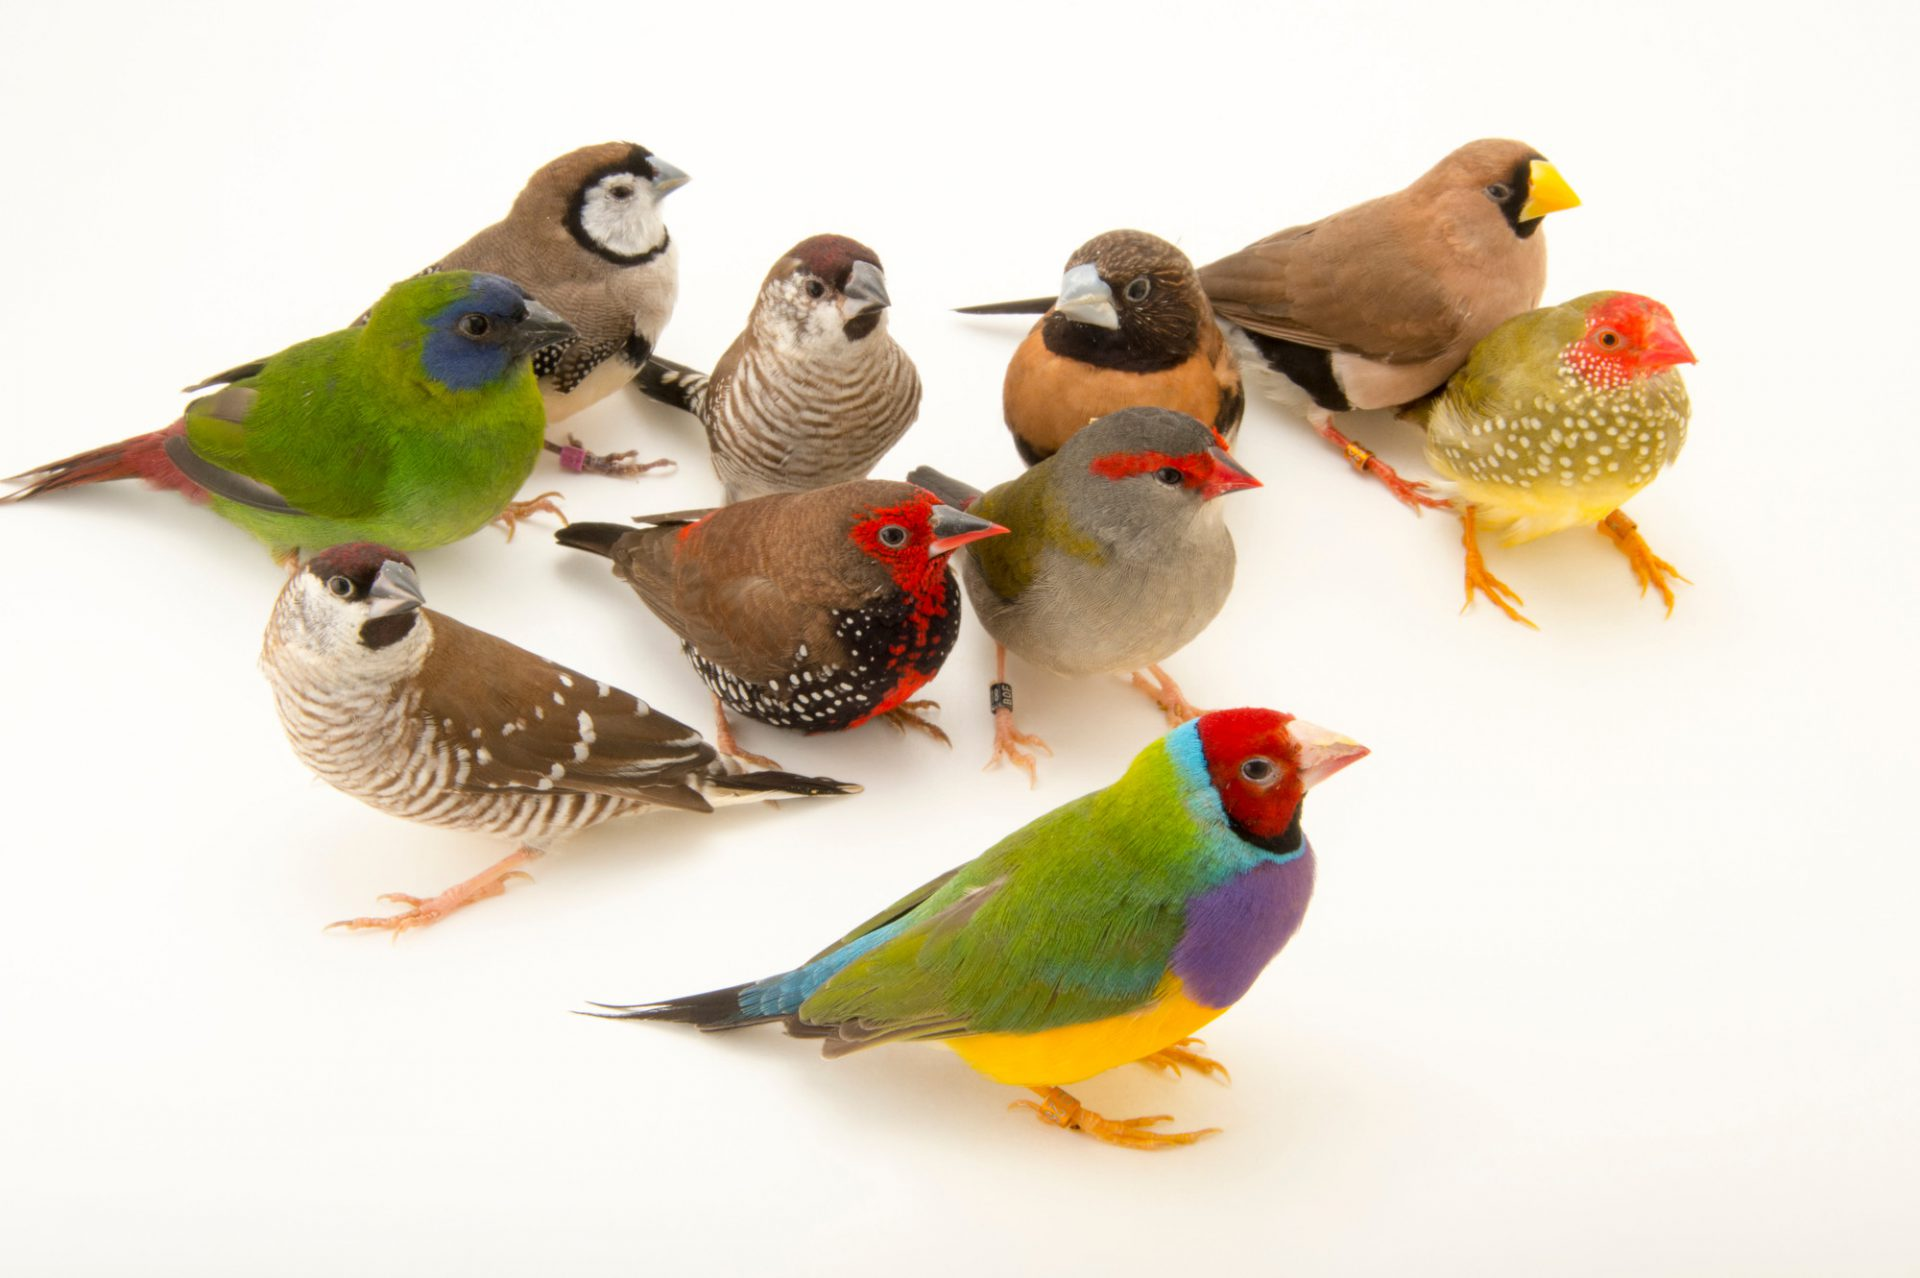 Picture of Australian finches from Plzen Zoo in the Czech Republic.